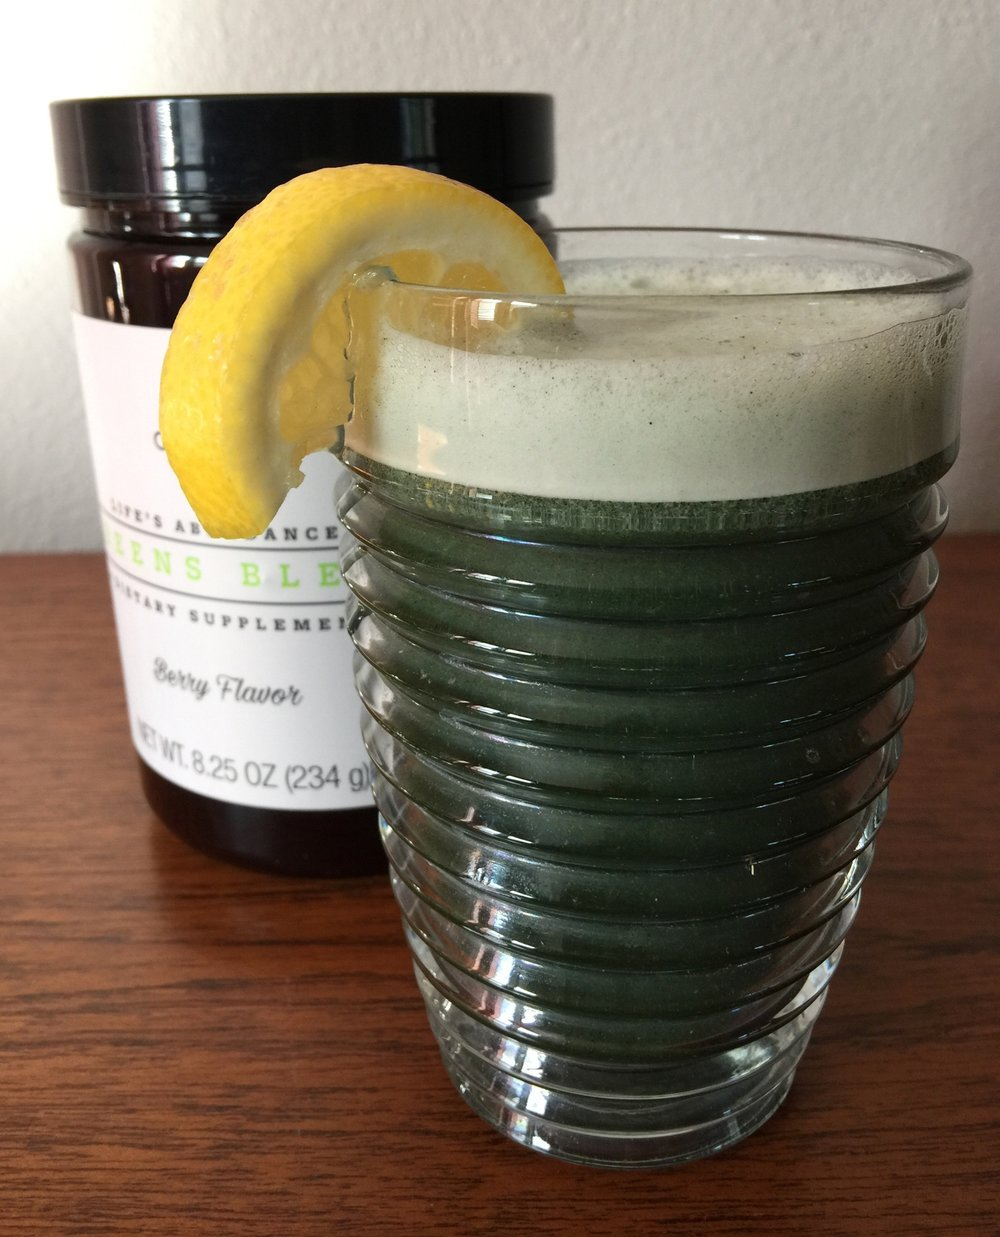 Love my  Greens Blend ! Pure organic grasses gently dried and combined with organic mushrooms. No grassy smell or aftertaste, and it also contains spiraling, chlorella, pulse powder and beet root. No added sugar, artificial flavors, colors or preservatives. I love it on ice with a slice of lemon!